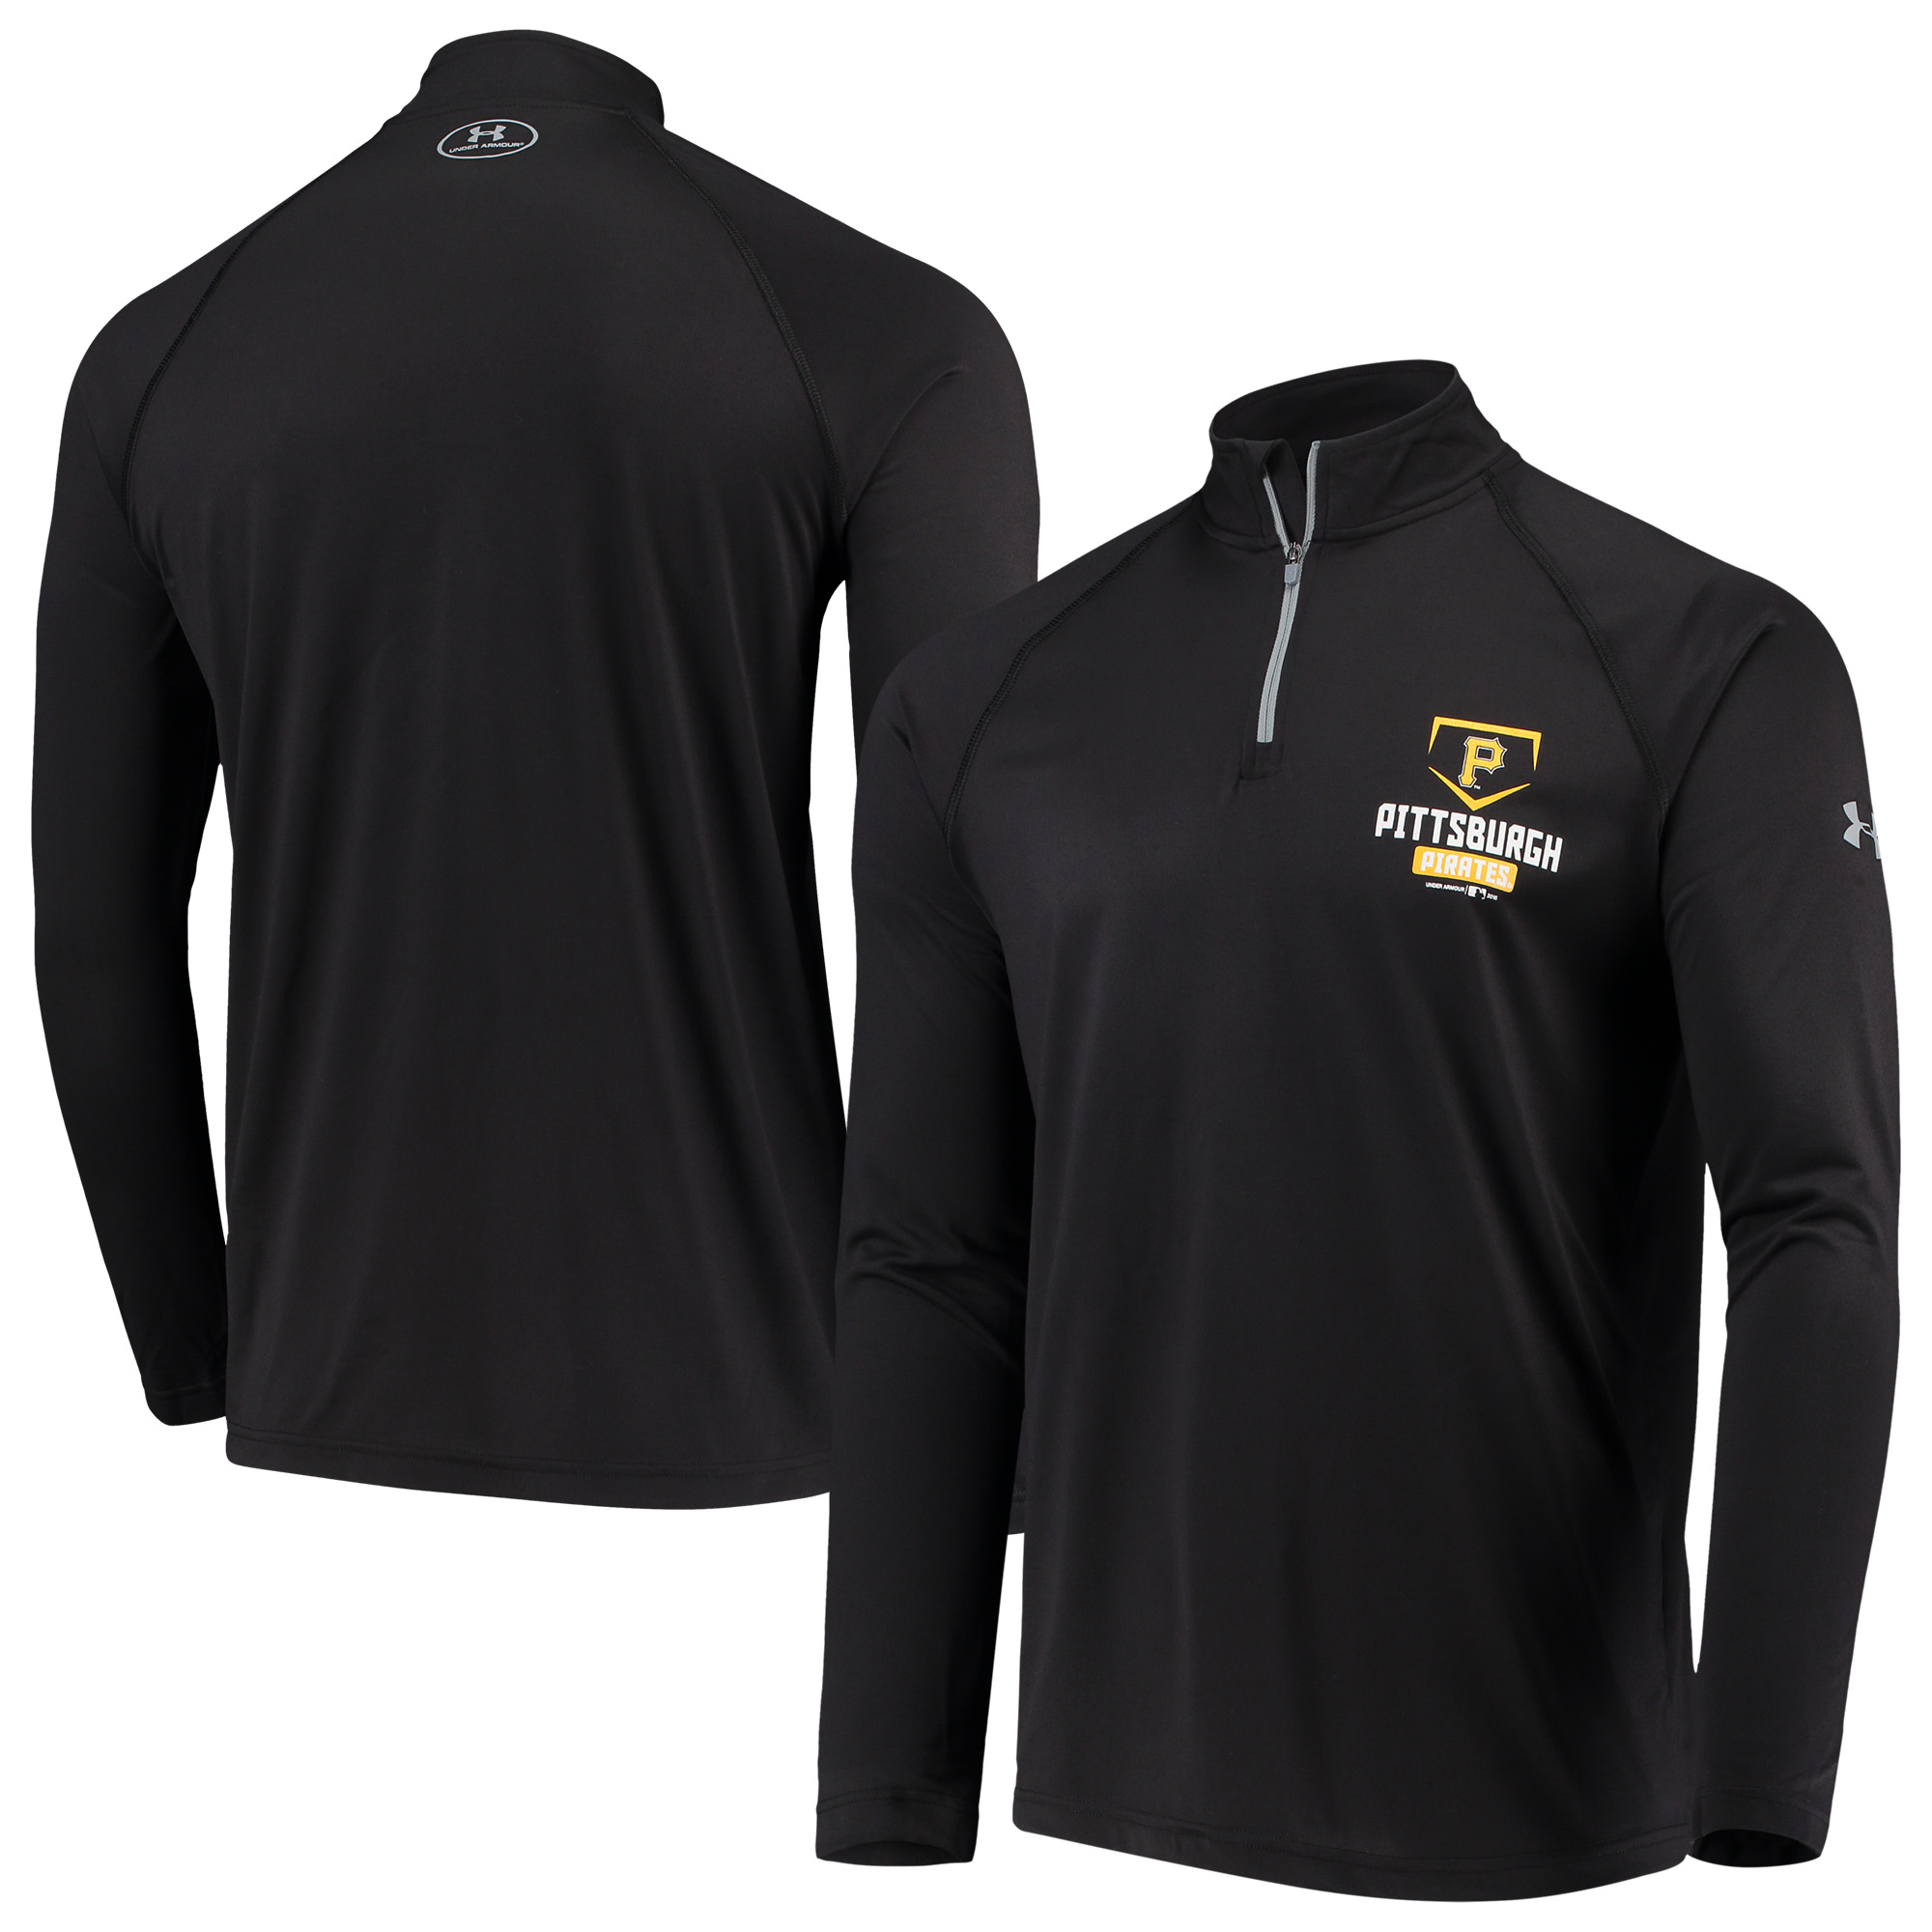 Pittsburgh Pirates Under Armour Tech Quarter-Zip Performance Pullover Jacket - Black